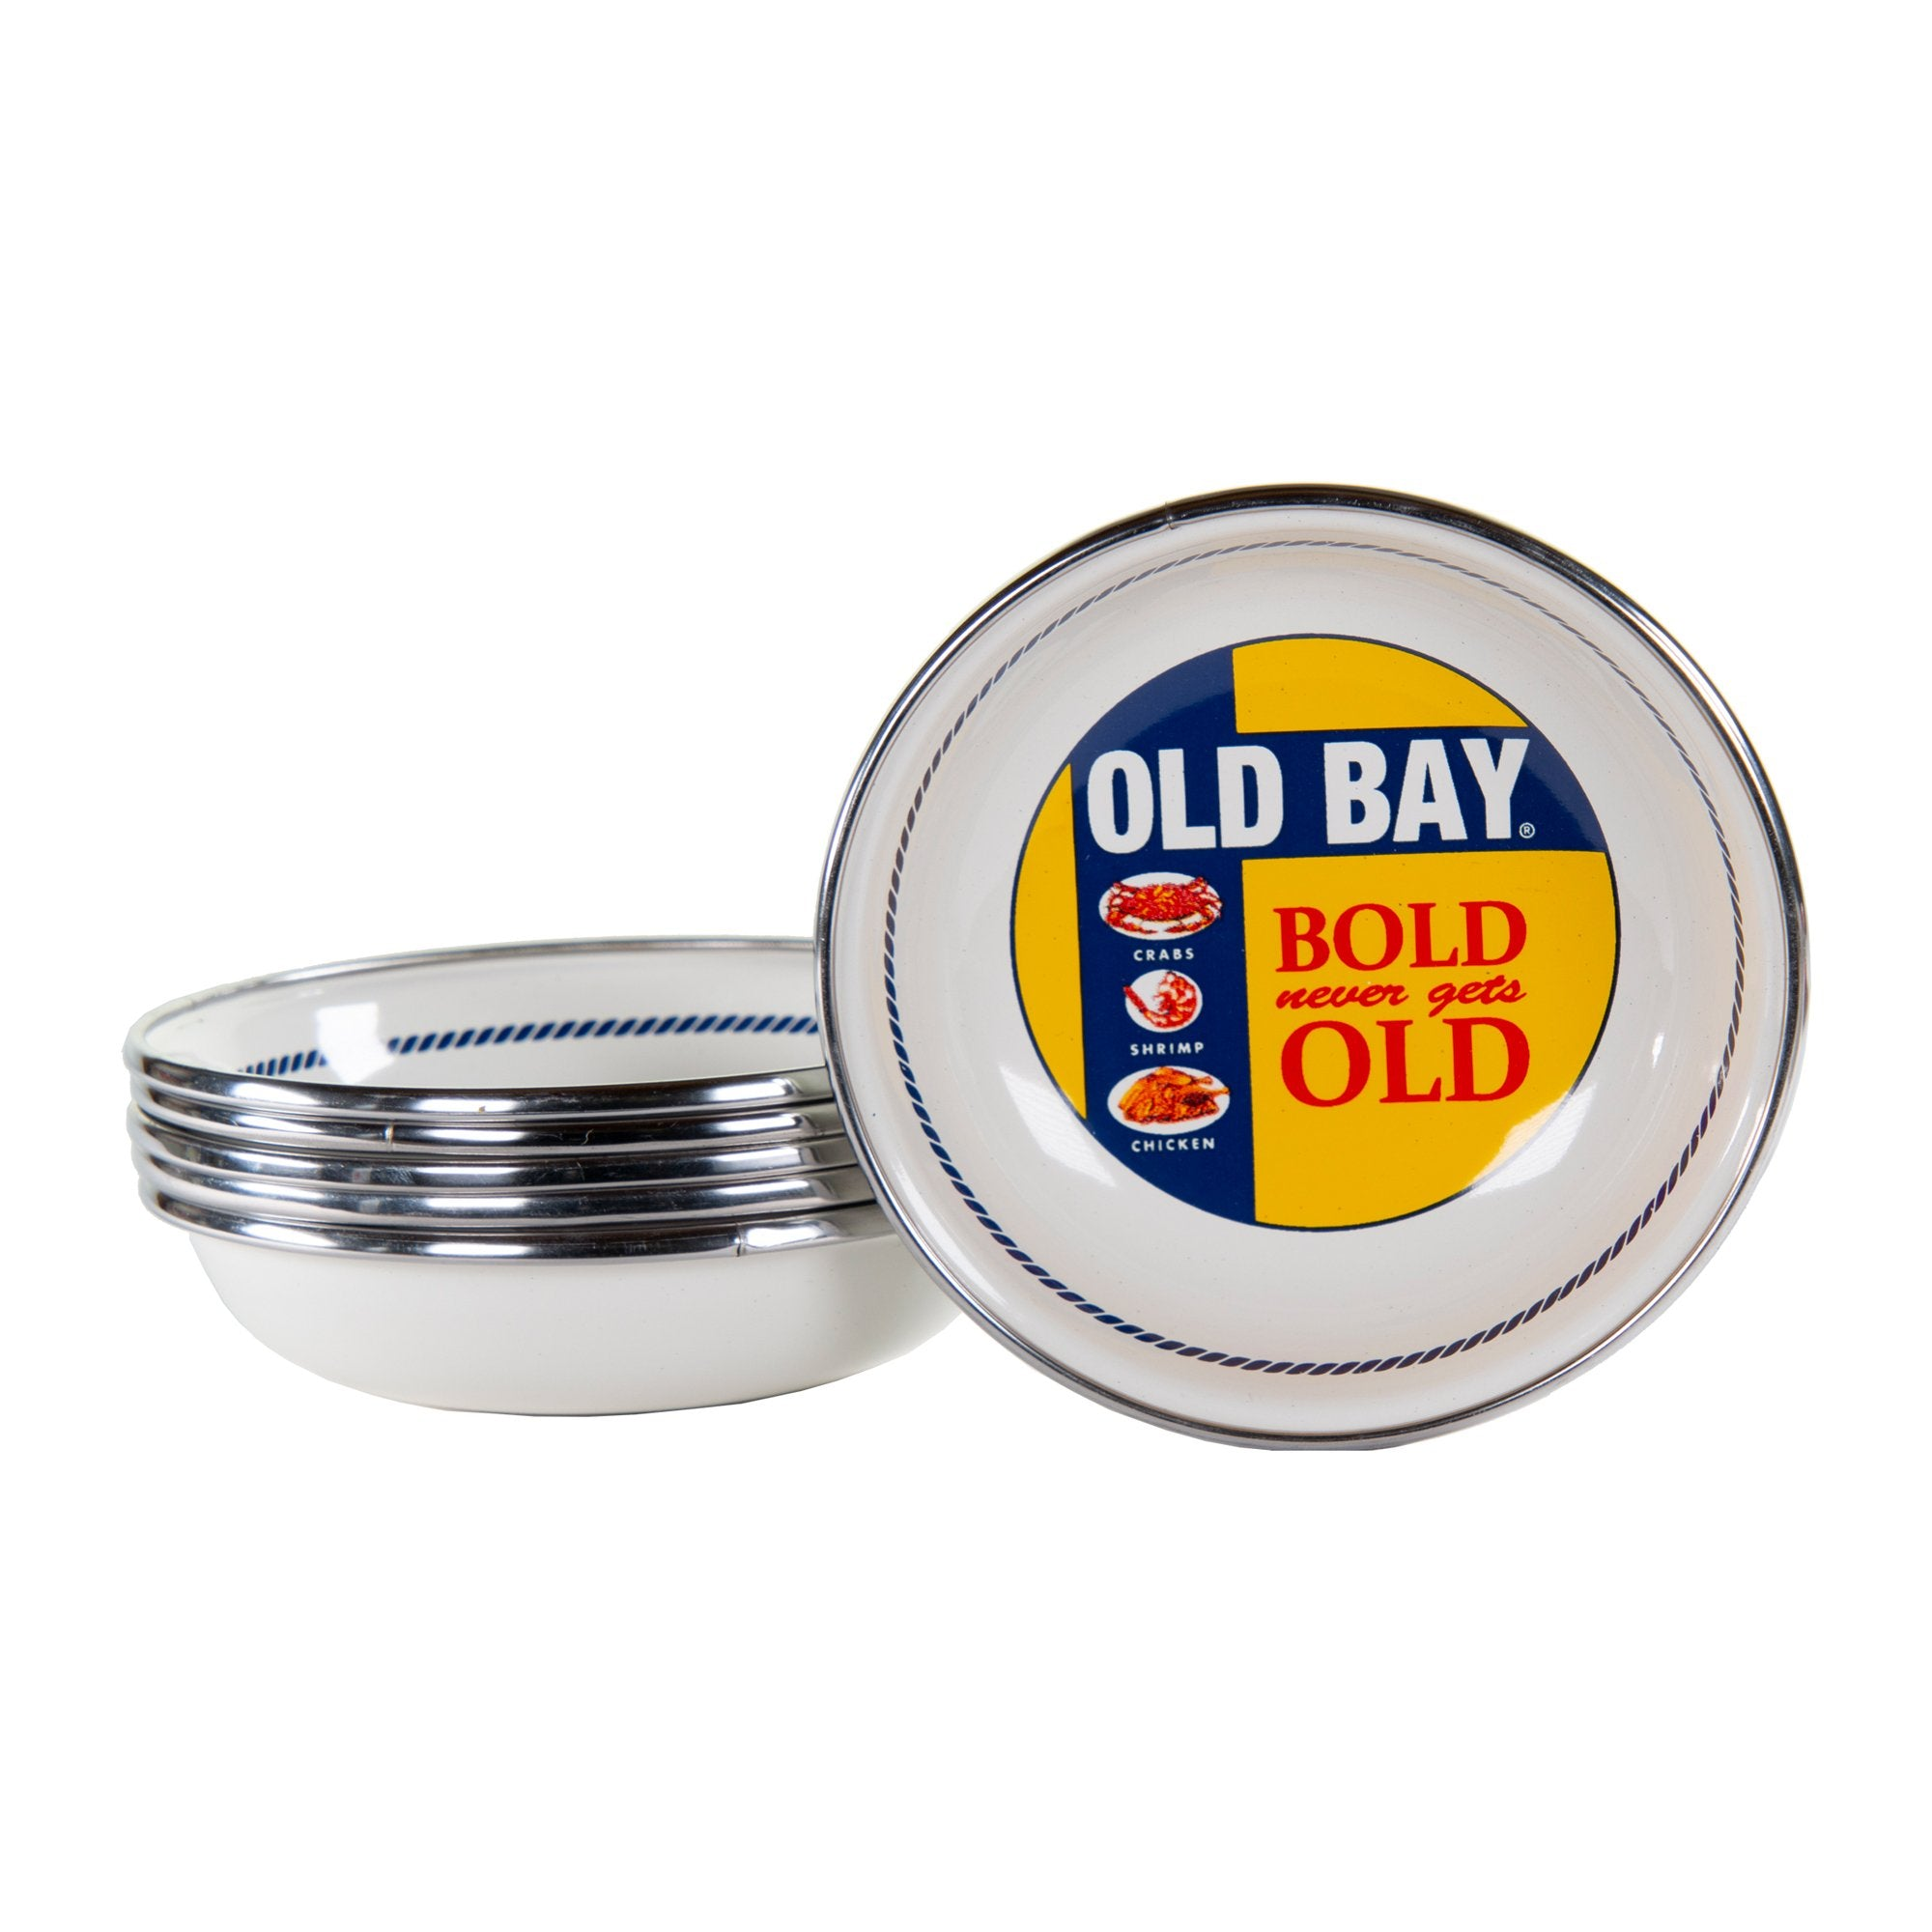 Old Bay Tasting Dish